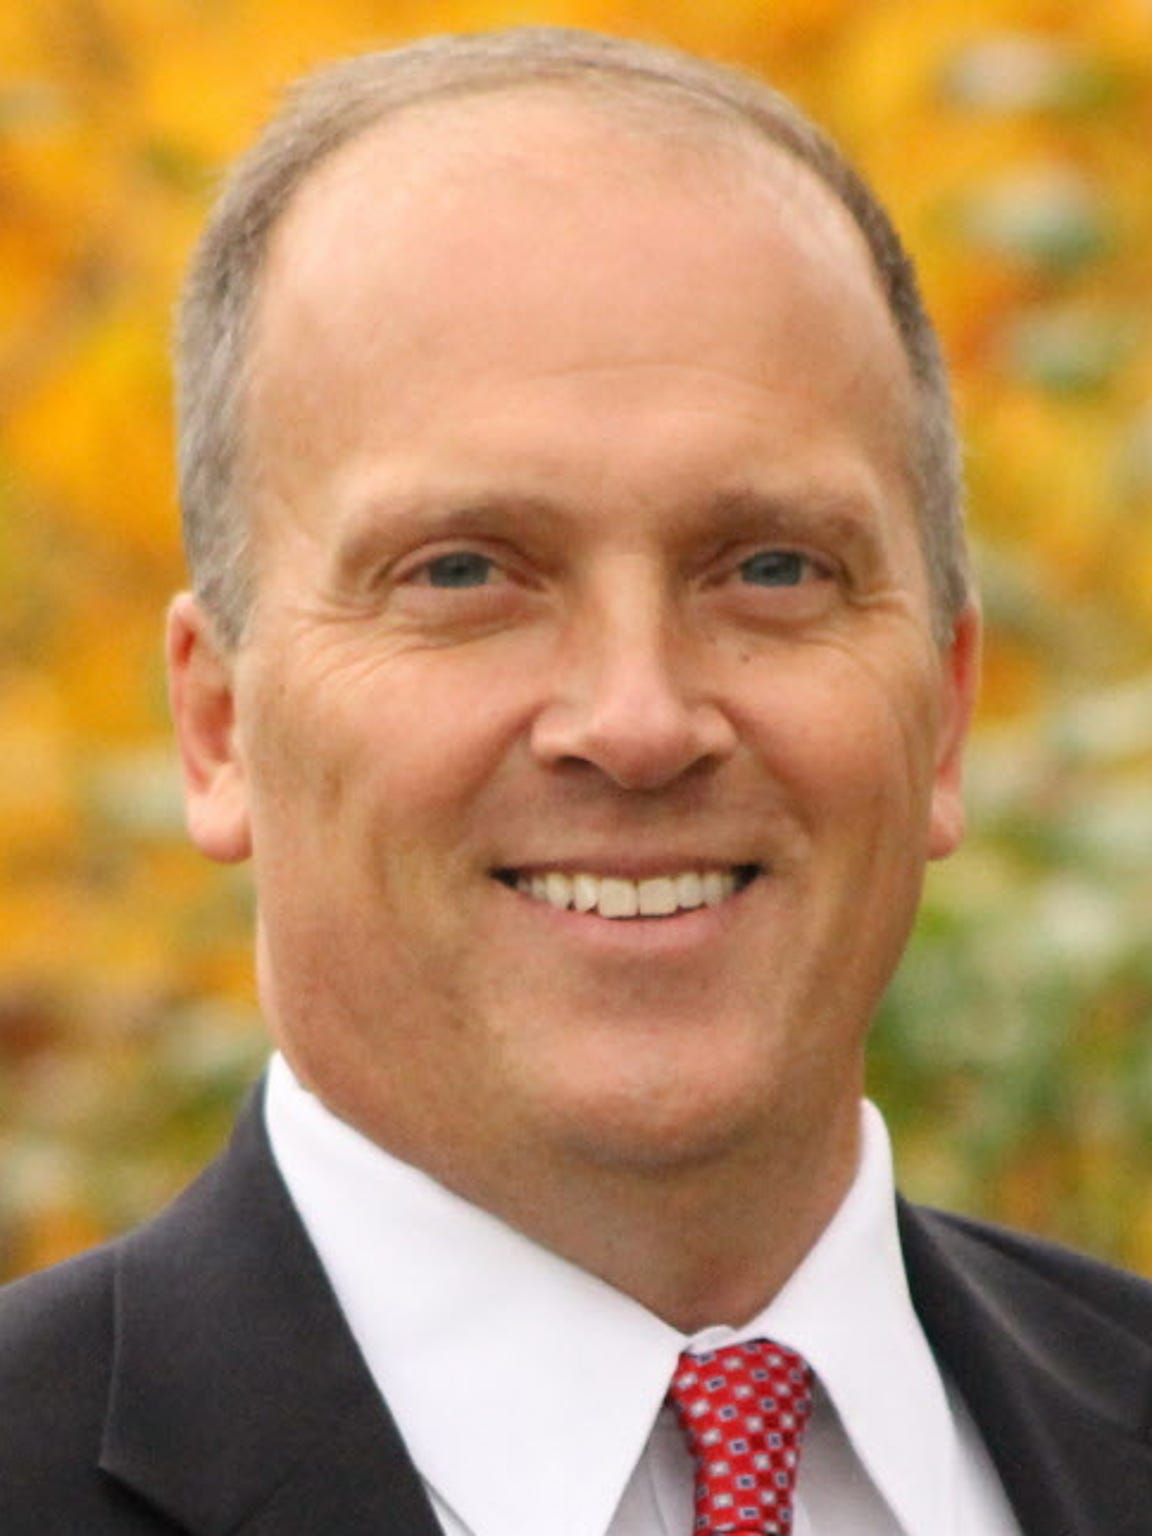 Wisconsin Attorney General Brad Schimel has advocated for a comprehensive approach to dealing with the opioid drug epidemic.